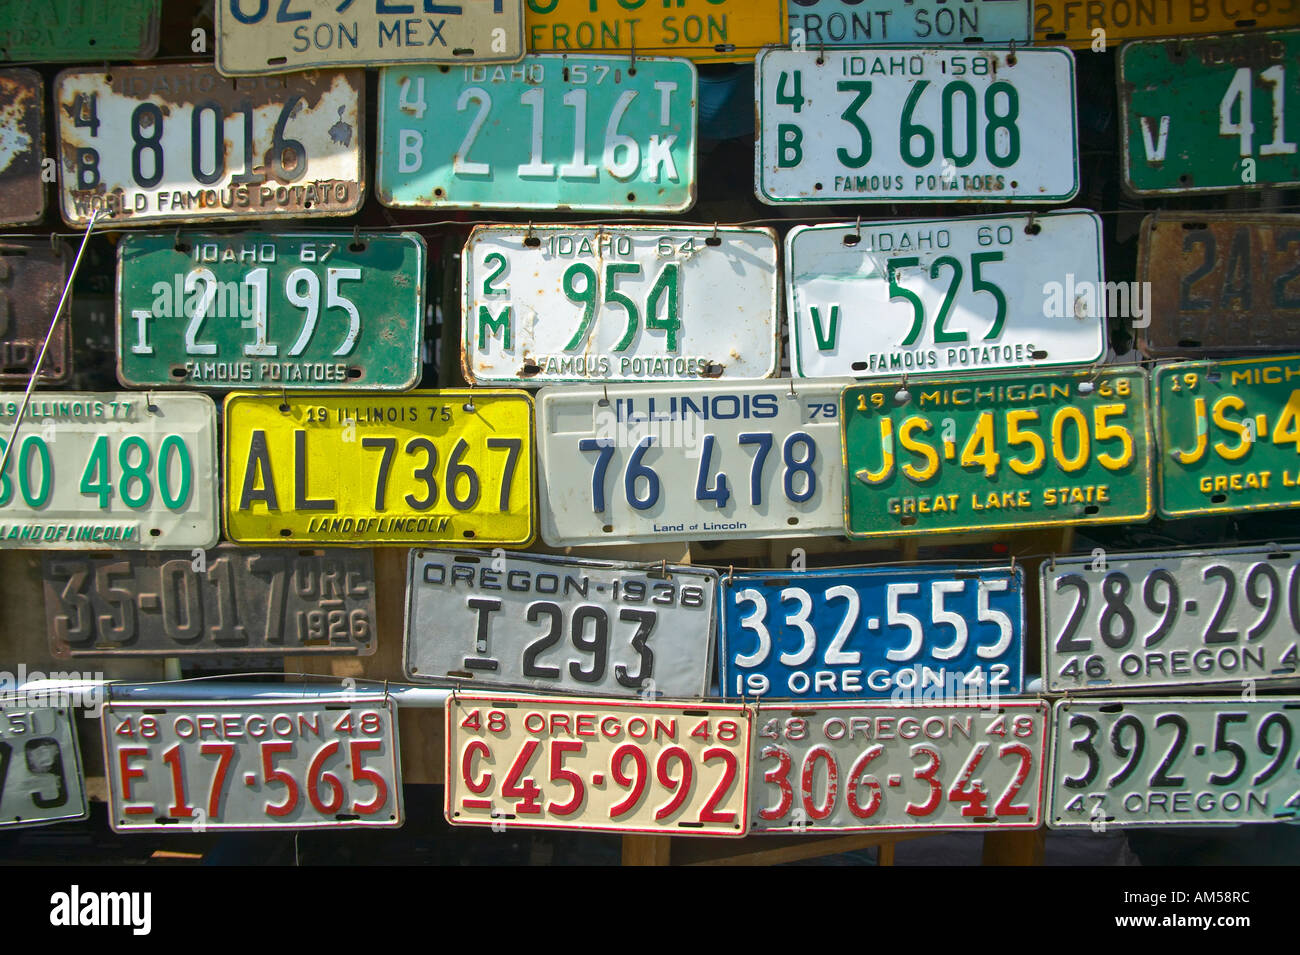 Vintage old license plates in Idaho Stock Photo: 8658811 - Alamy